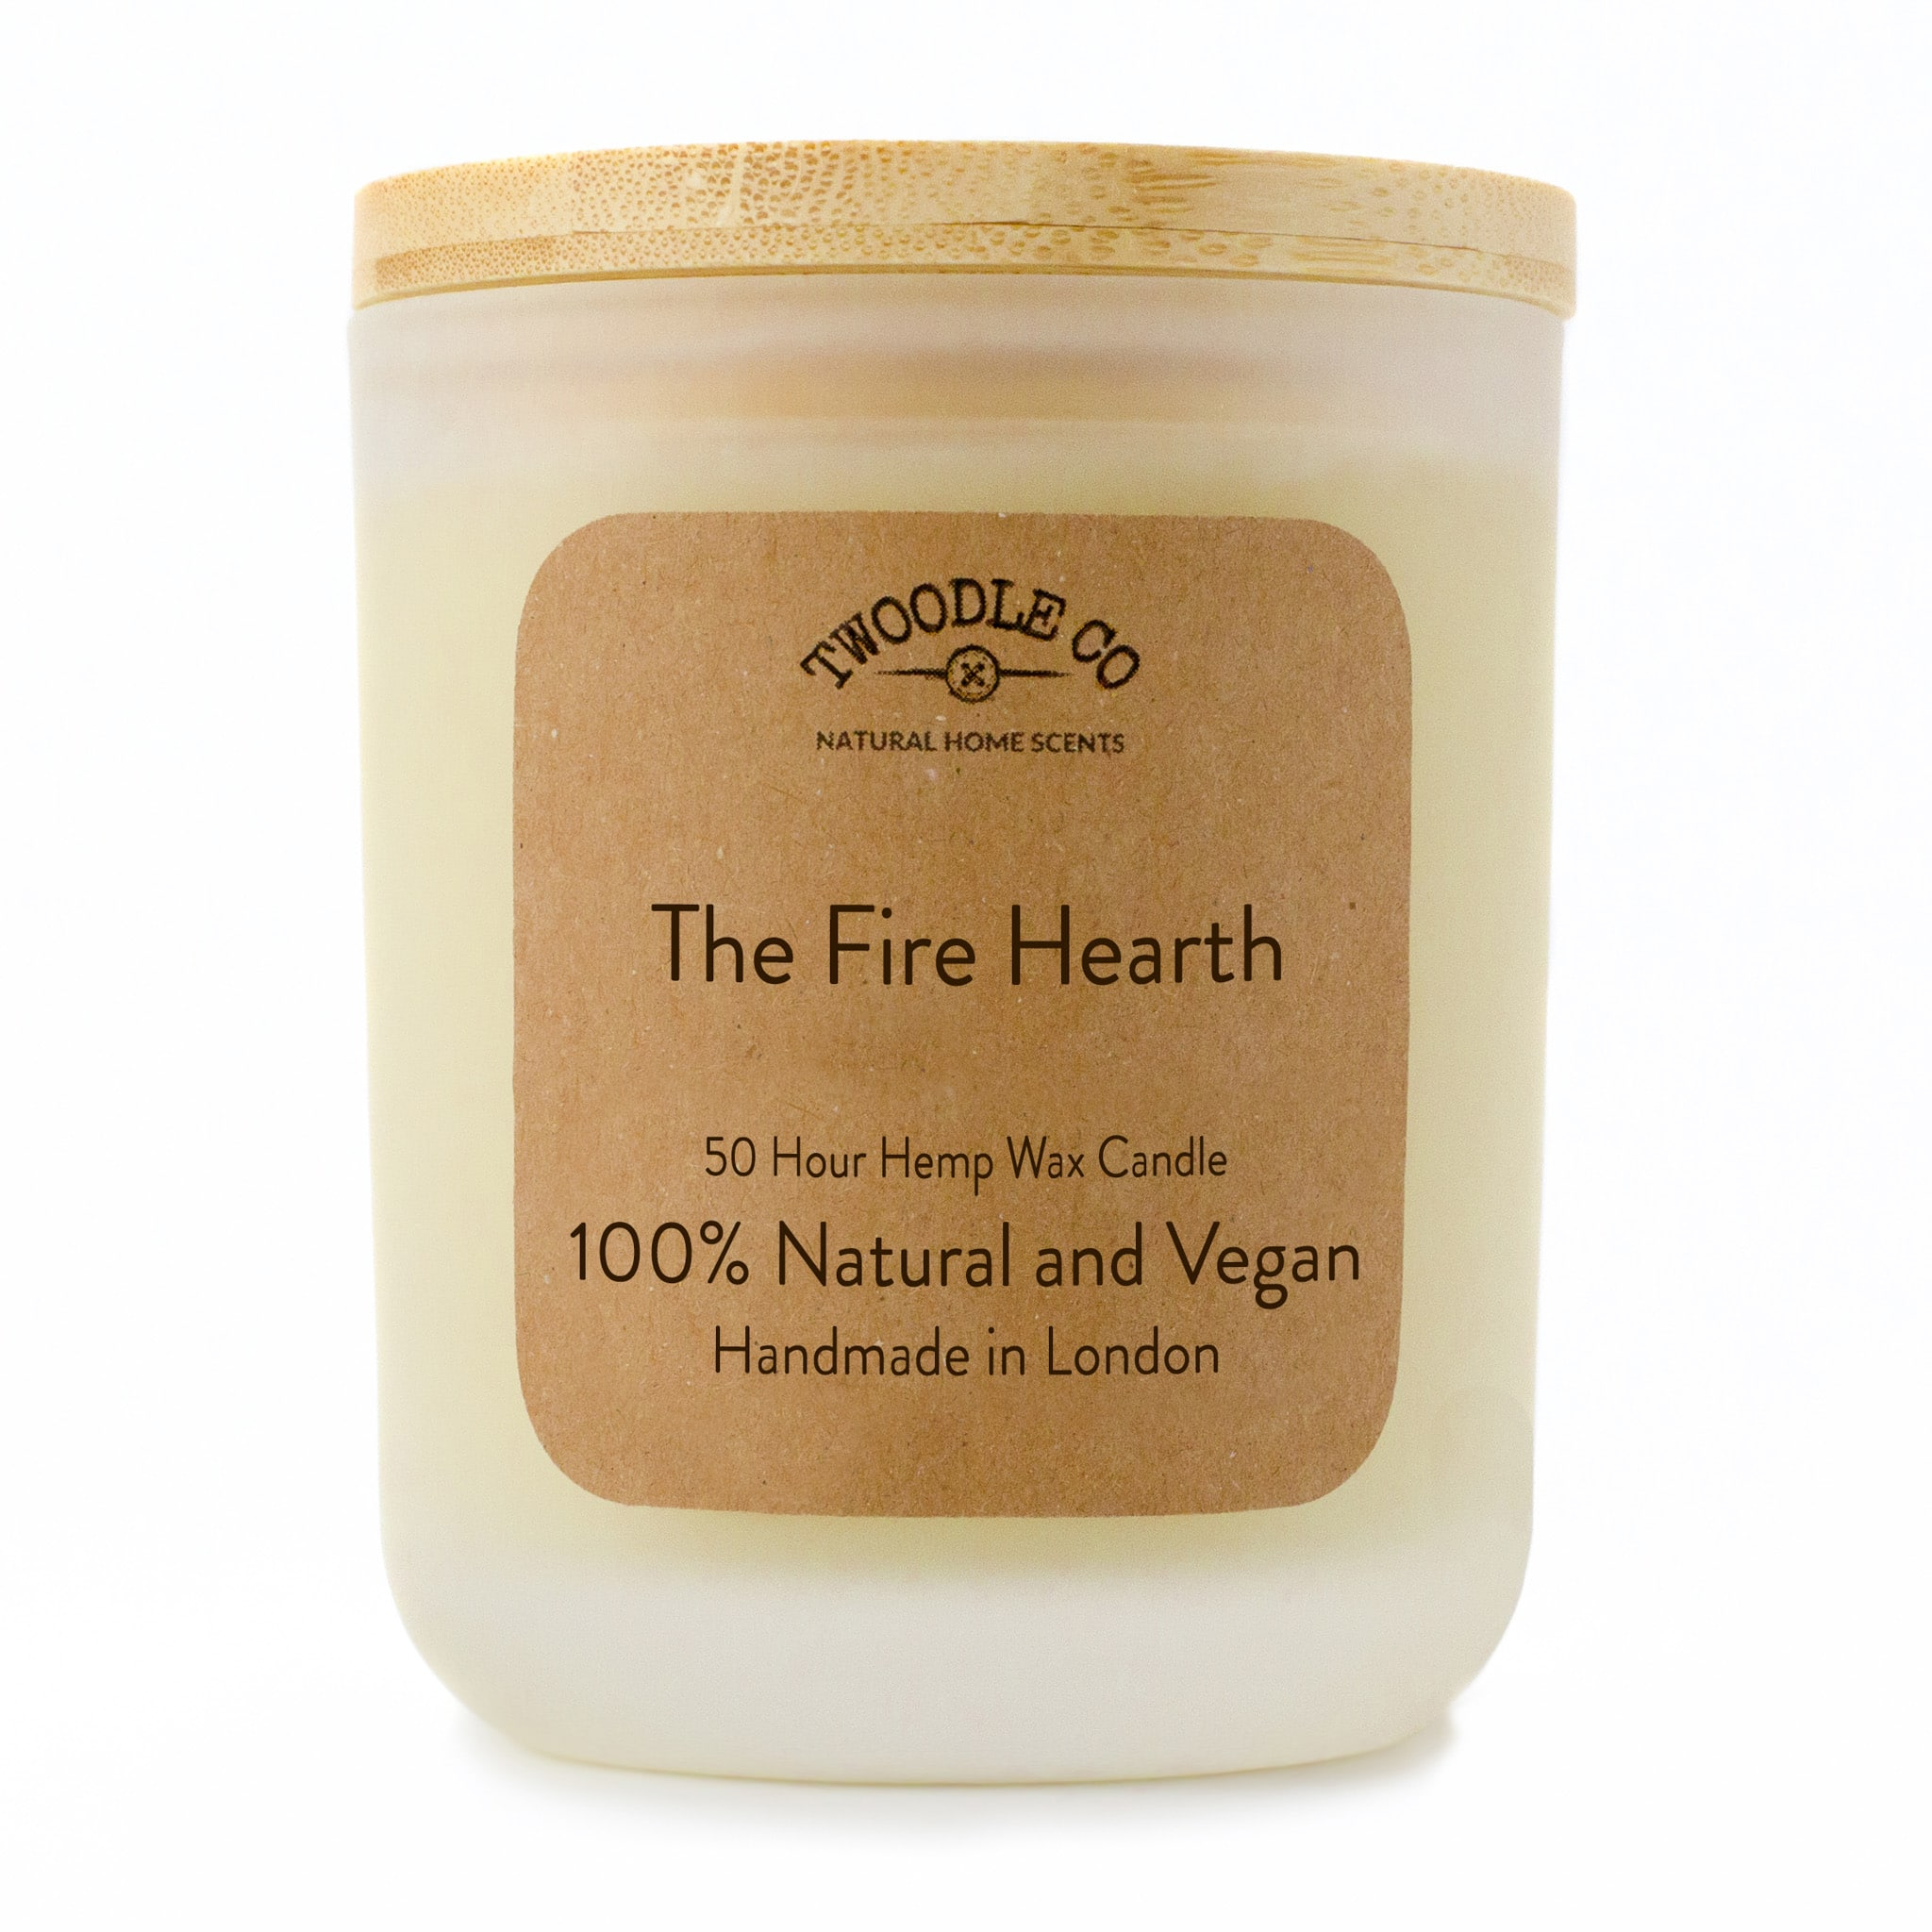 Twoodle Co Medium Scented Candle The Fire Hearth